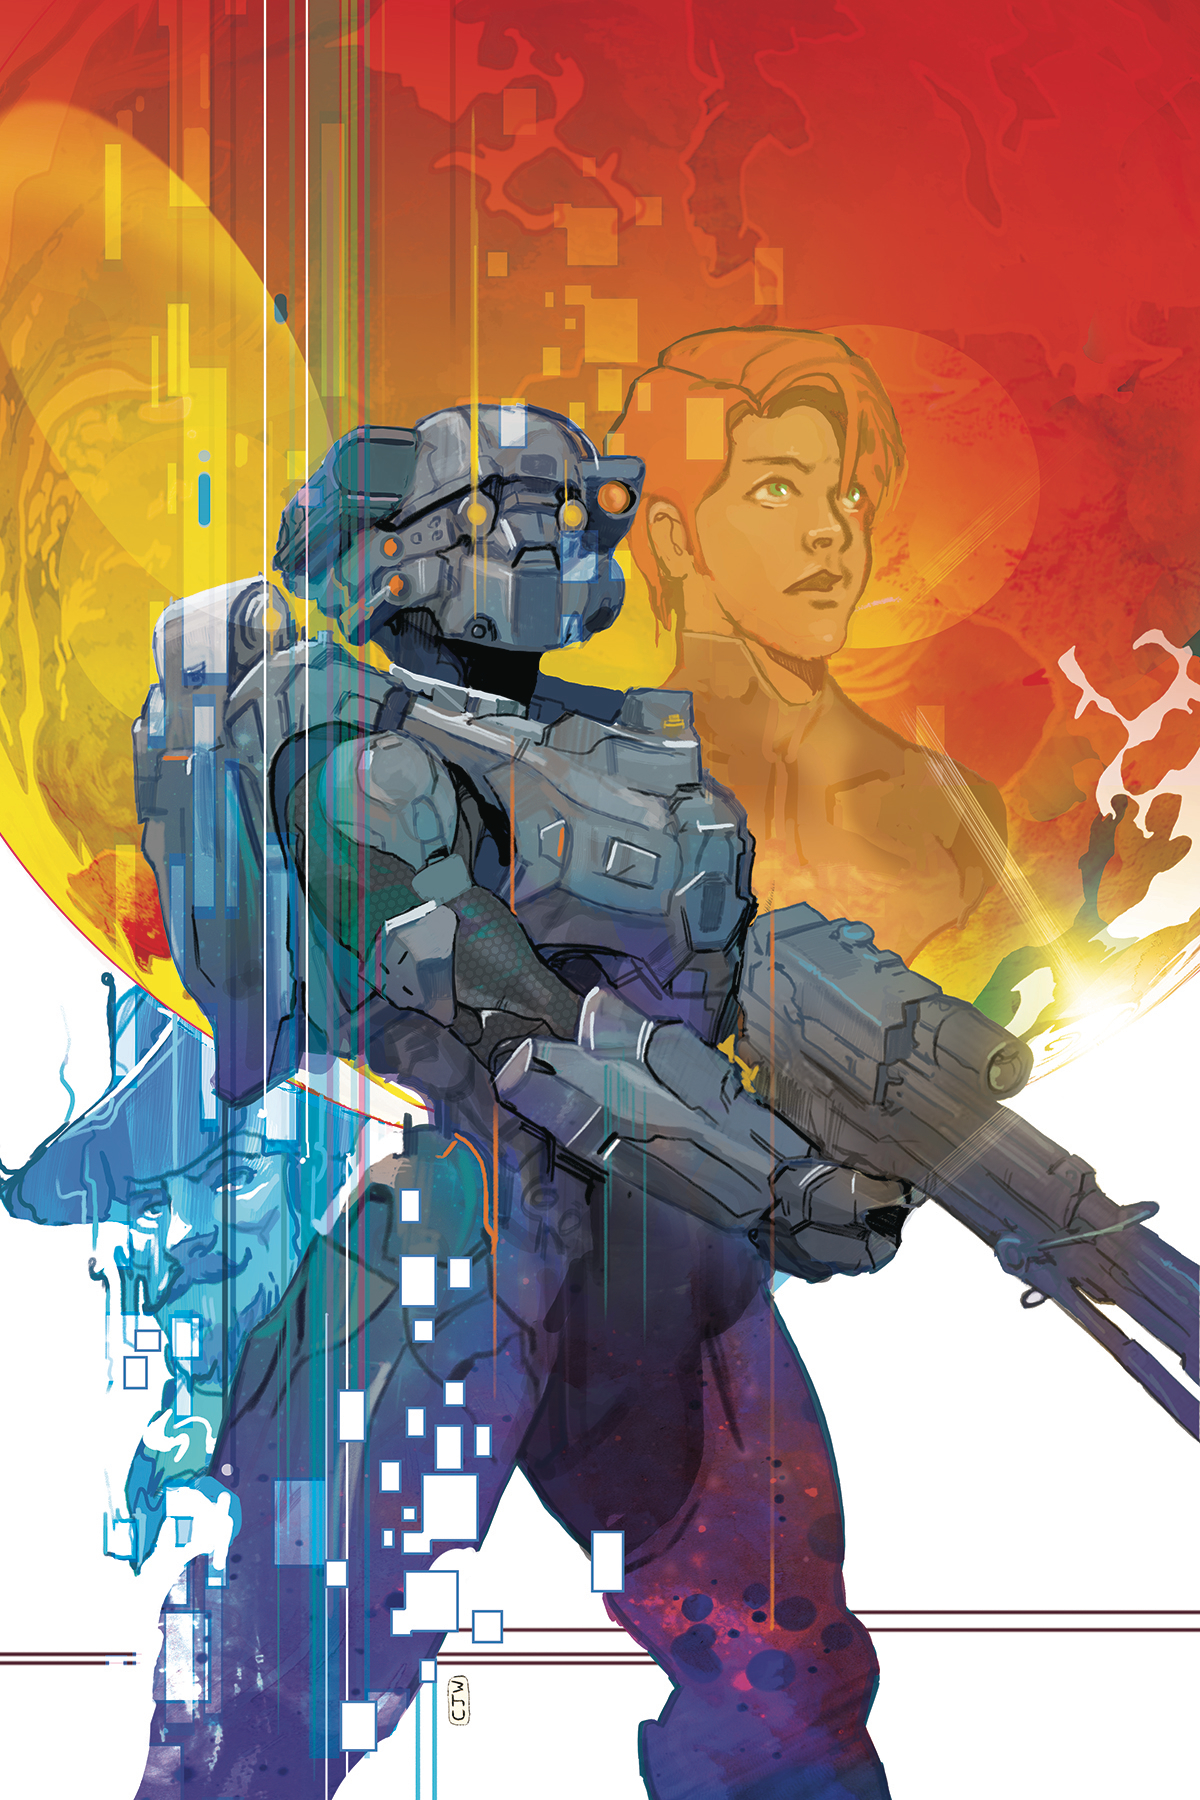 HALO LONE WOLF #1 (OF 4)